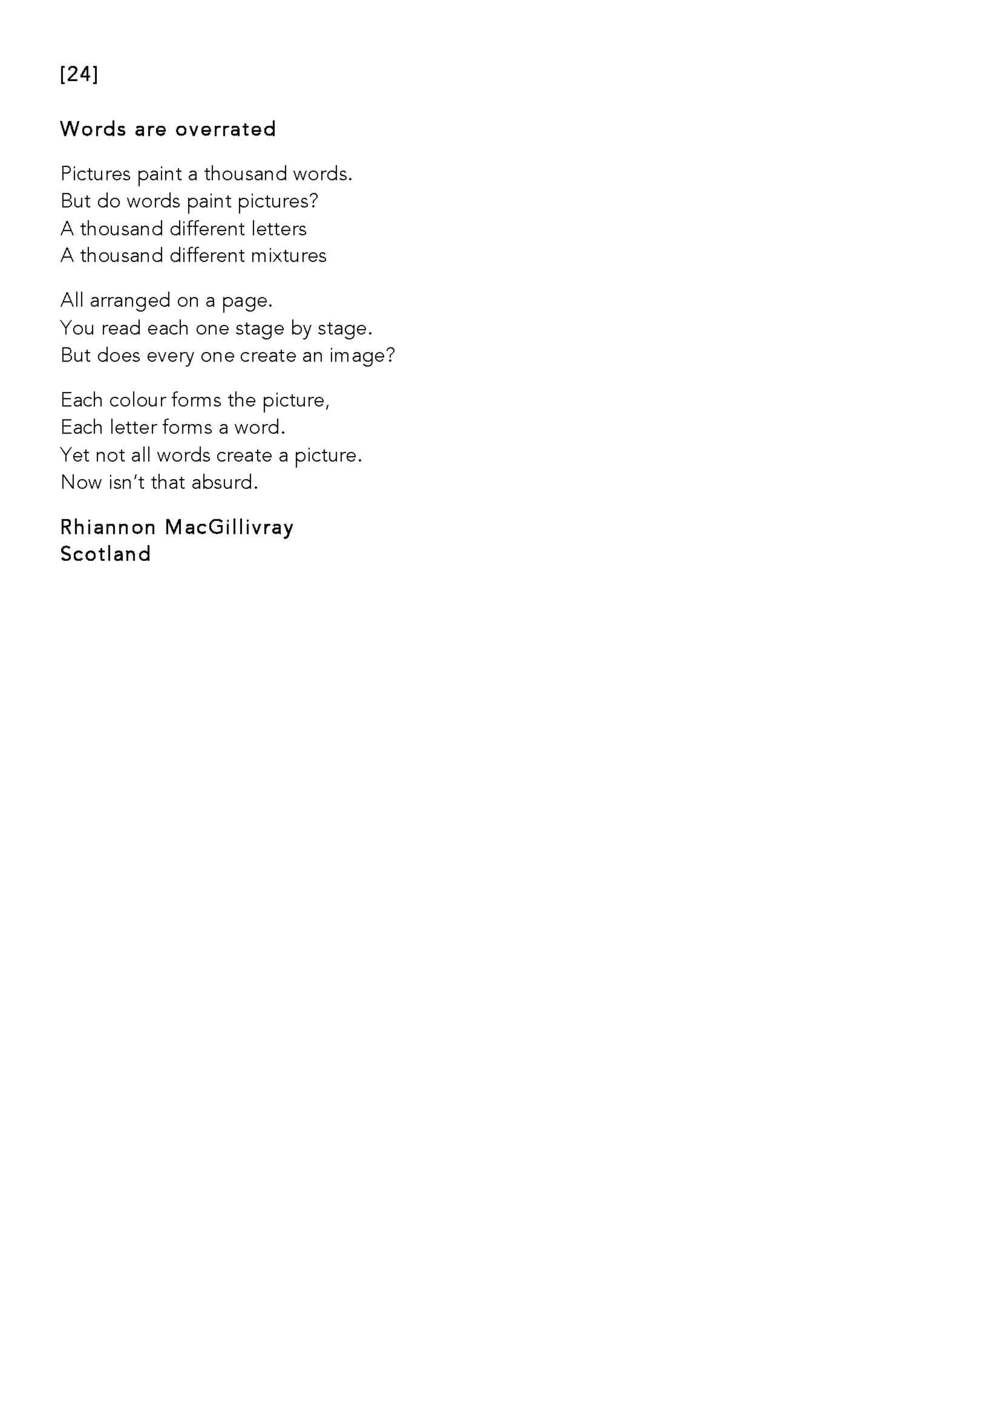 Poetry Collection - Everyone can Poetry _ For 22 June 2014_Page_24.jpg